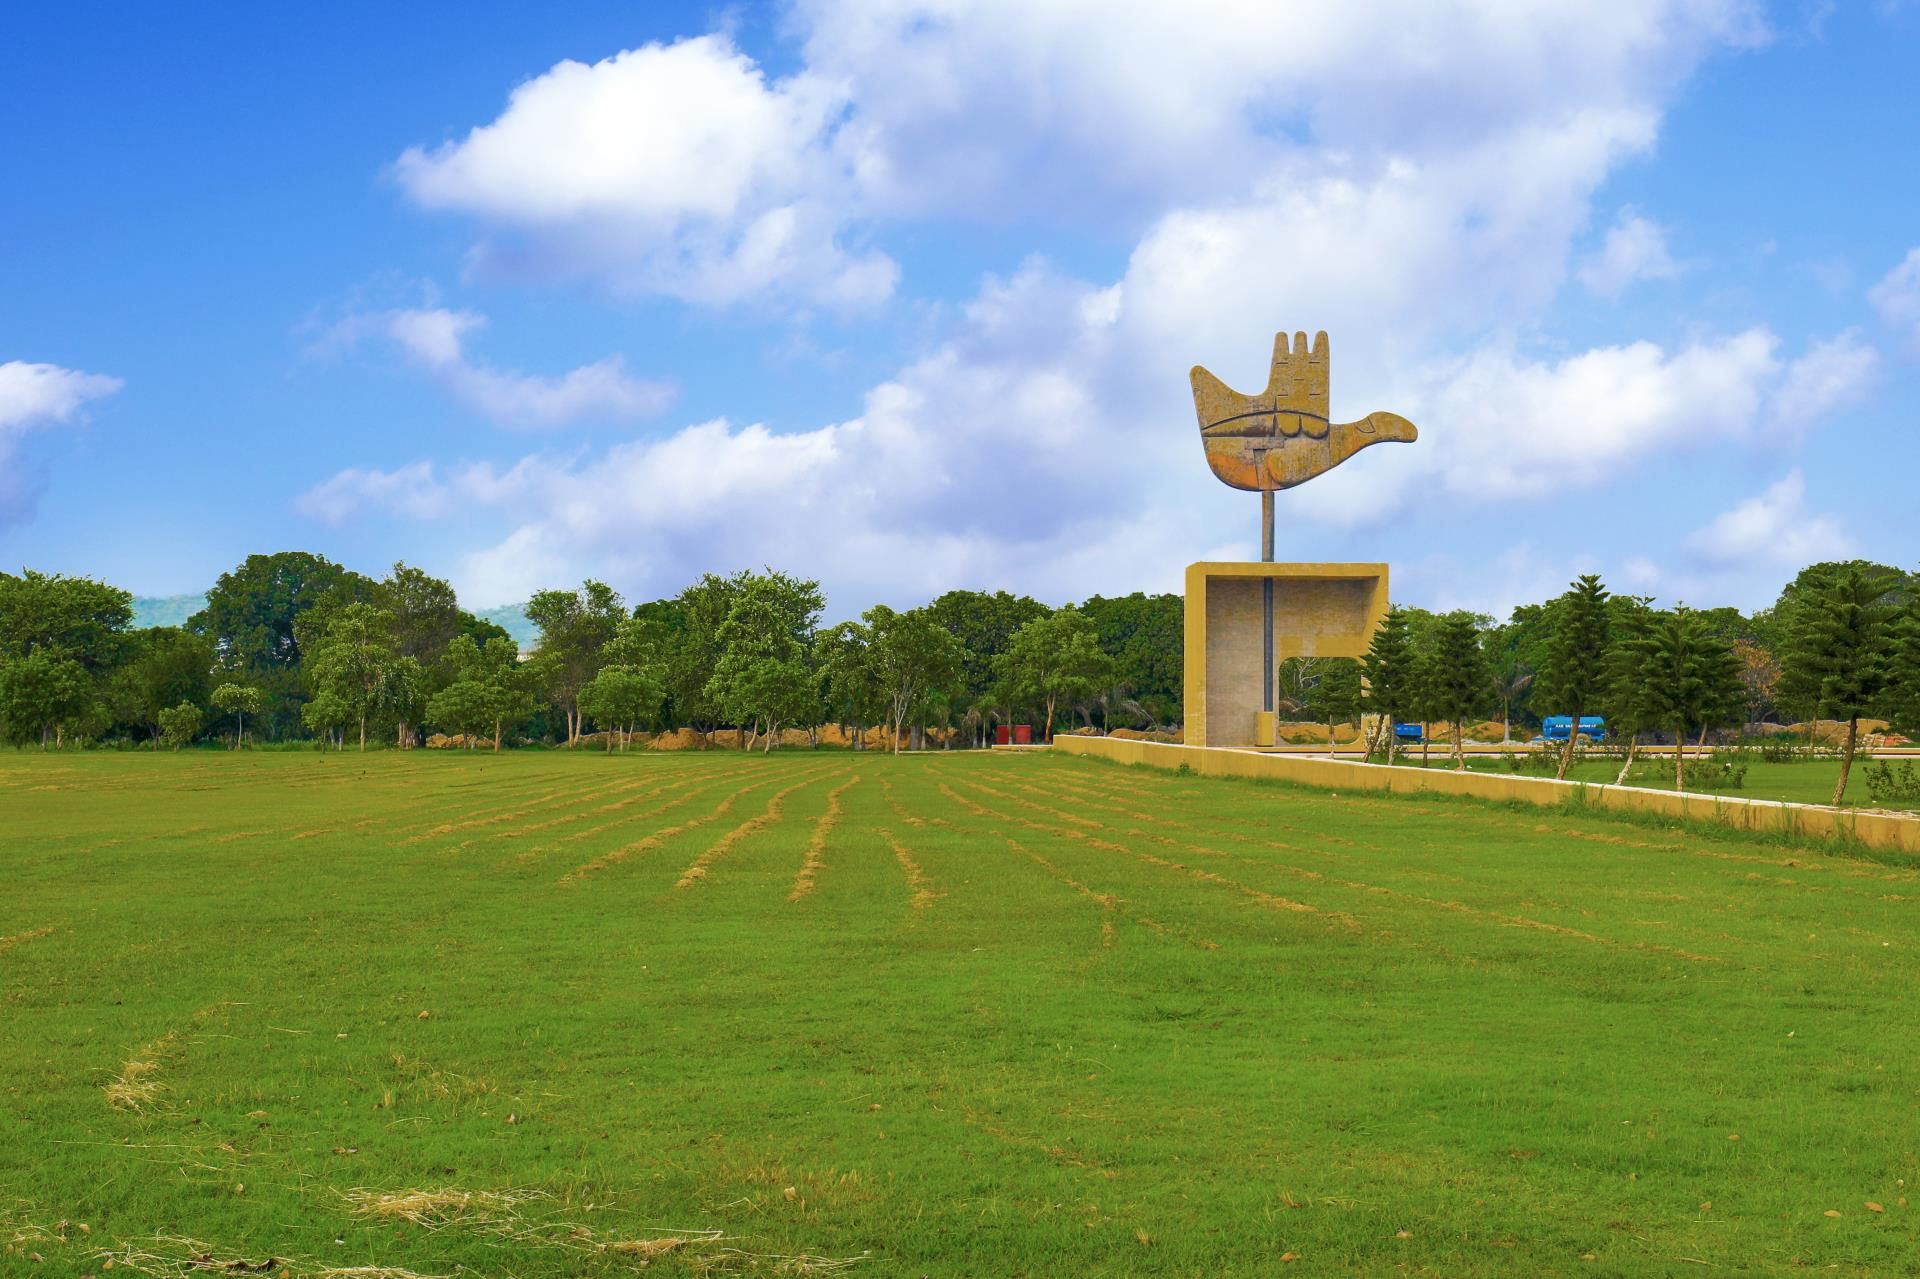 places to visit near me in Chandigarh